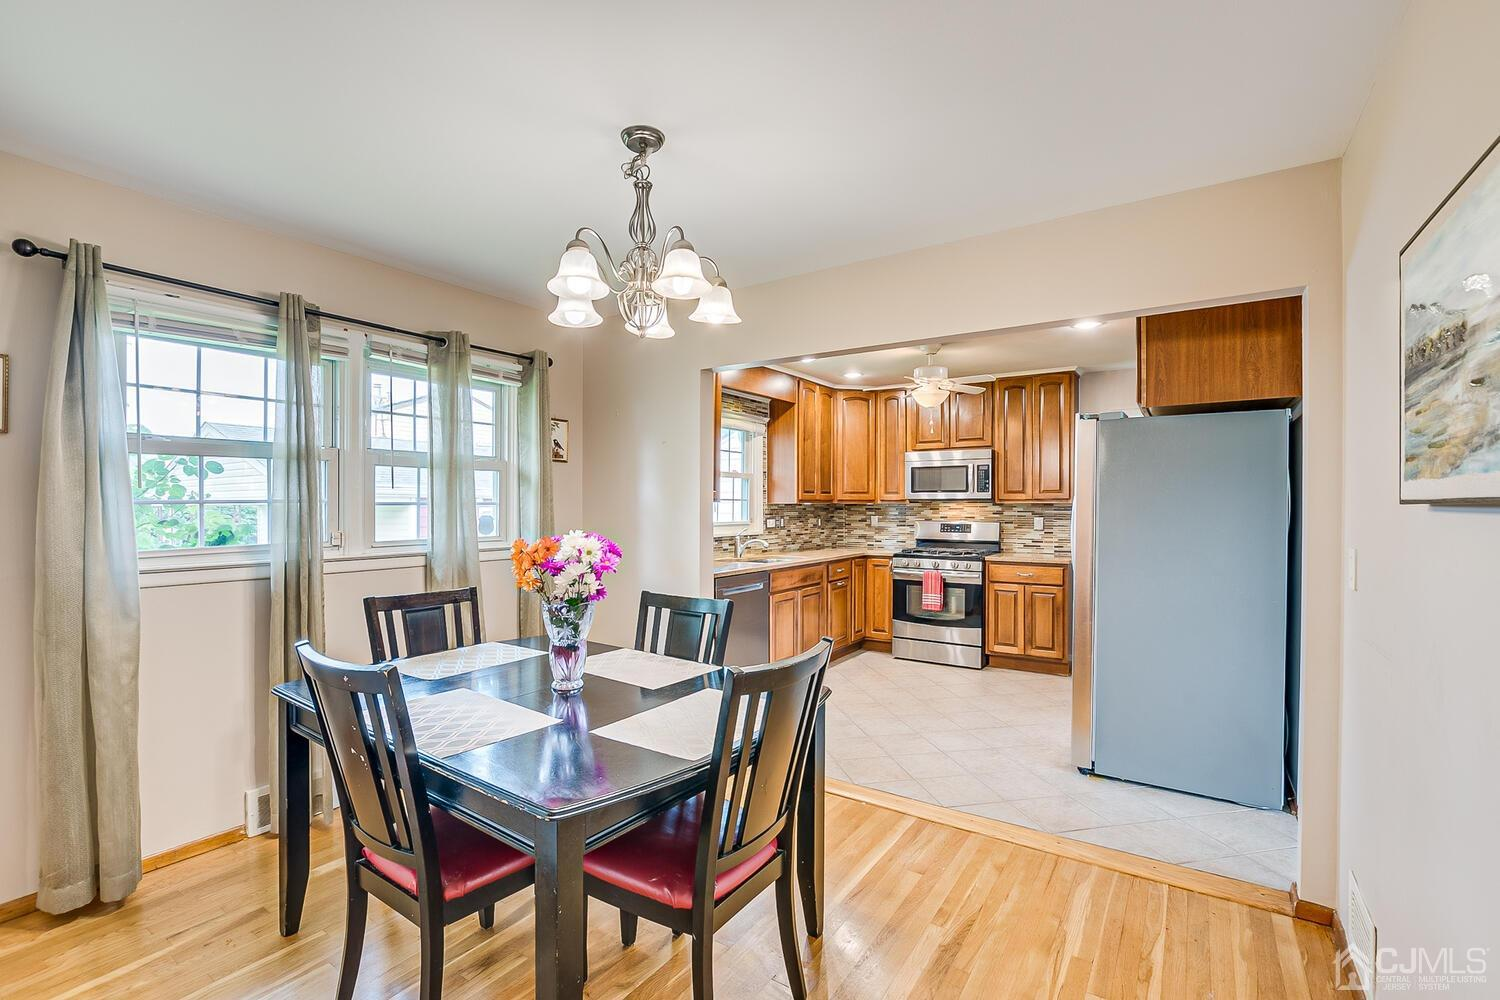 Open Floor Plan from Formal Dining Room to Updated Kitchen with Granite Counter Tops and GorGeous Back Splash.